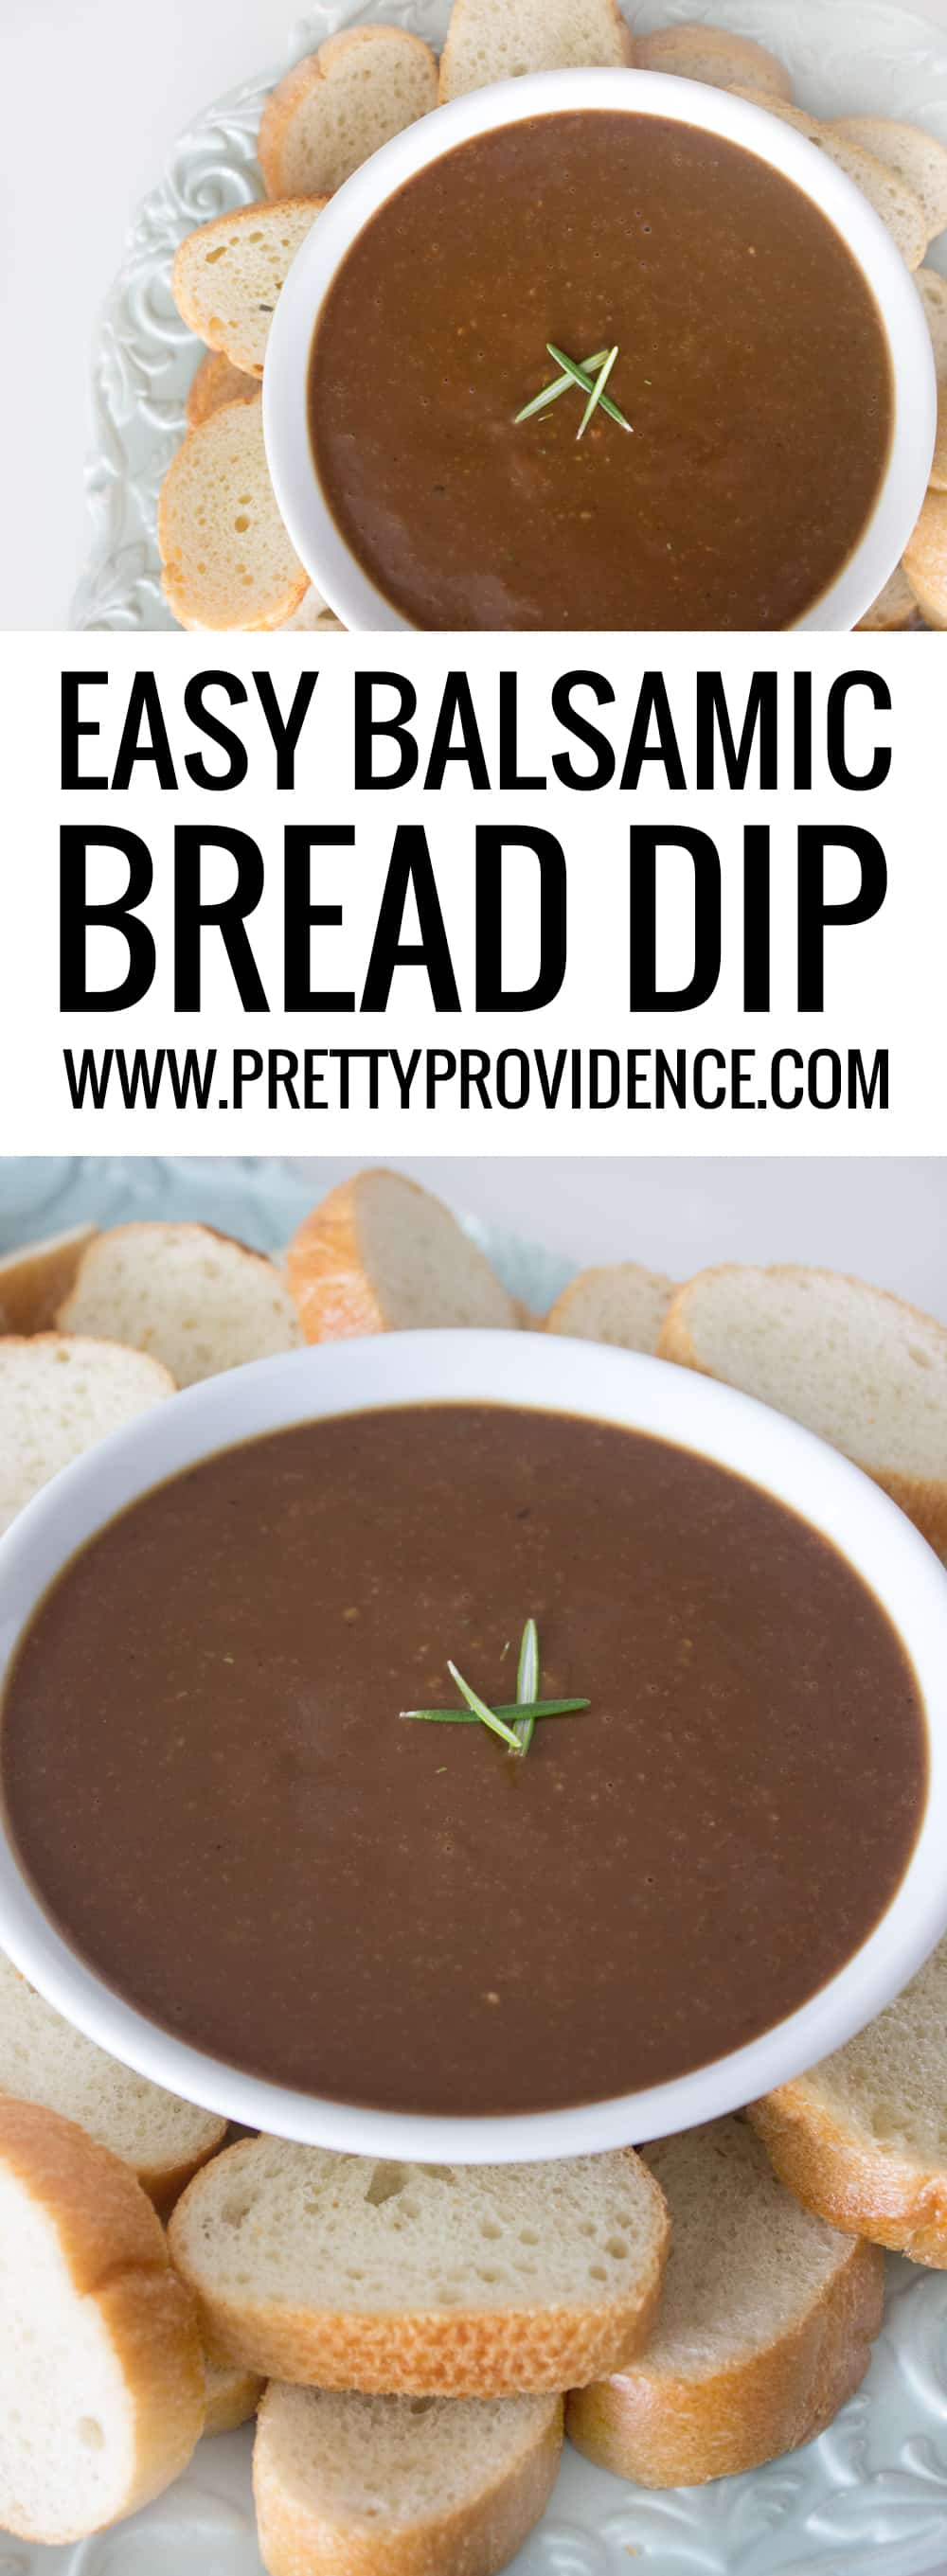 Oh. My. Gosh. This bread dip is out of this world AMAZING. The easiest appetizer to throw together and people will be begging you for the recipe! Carb lovers unite.